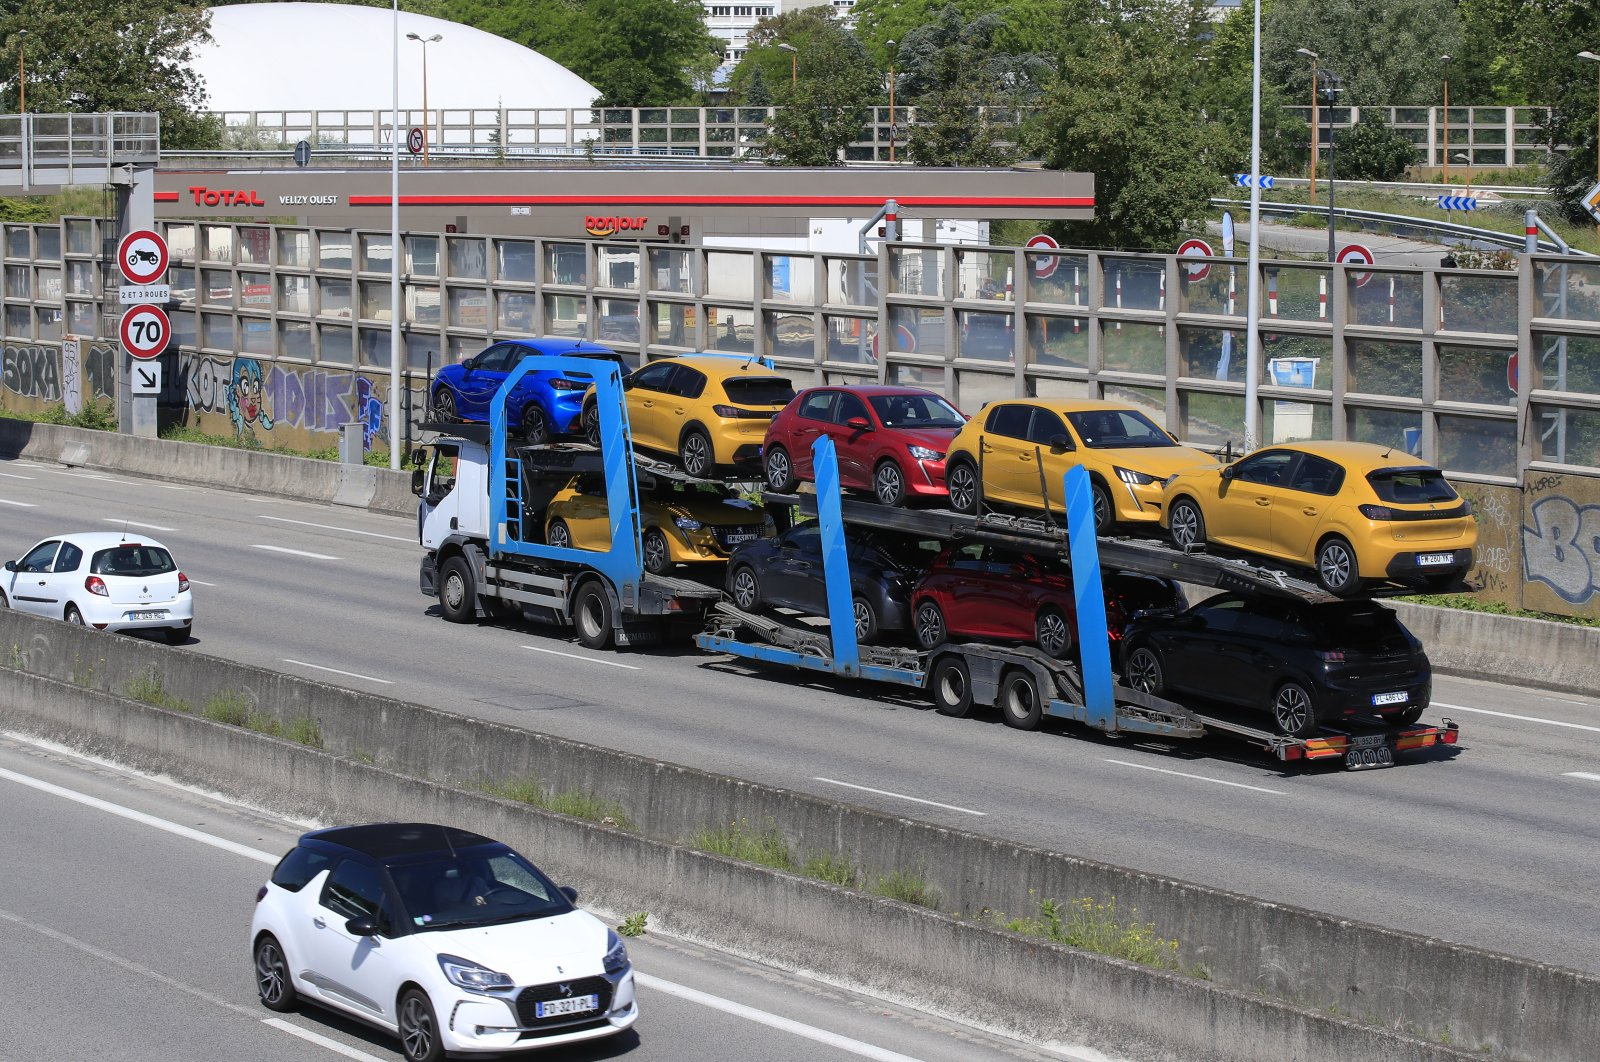 A truck carries new cars on the motorway leading to Paris, May 26, 2020 in Villacoublay, west of Paris. (AP Photo)